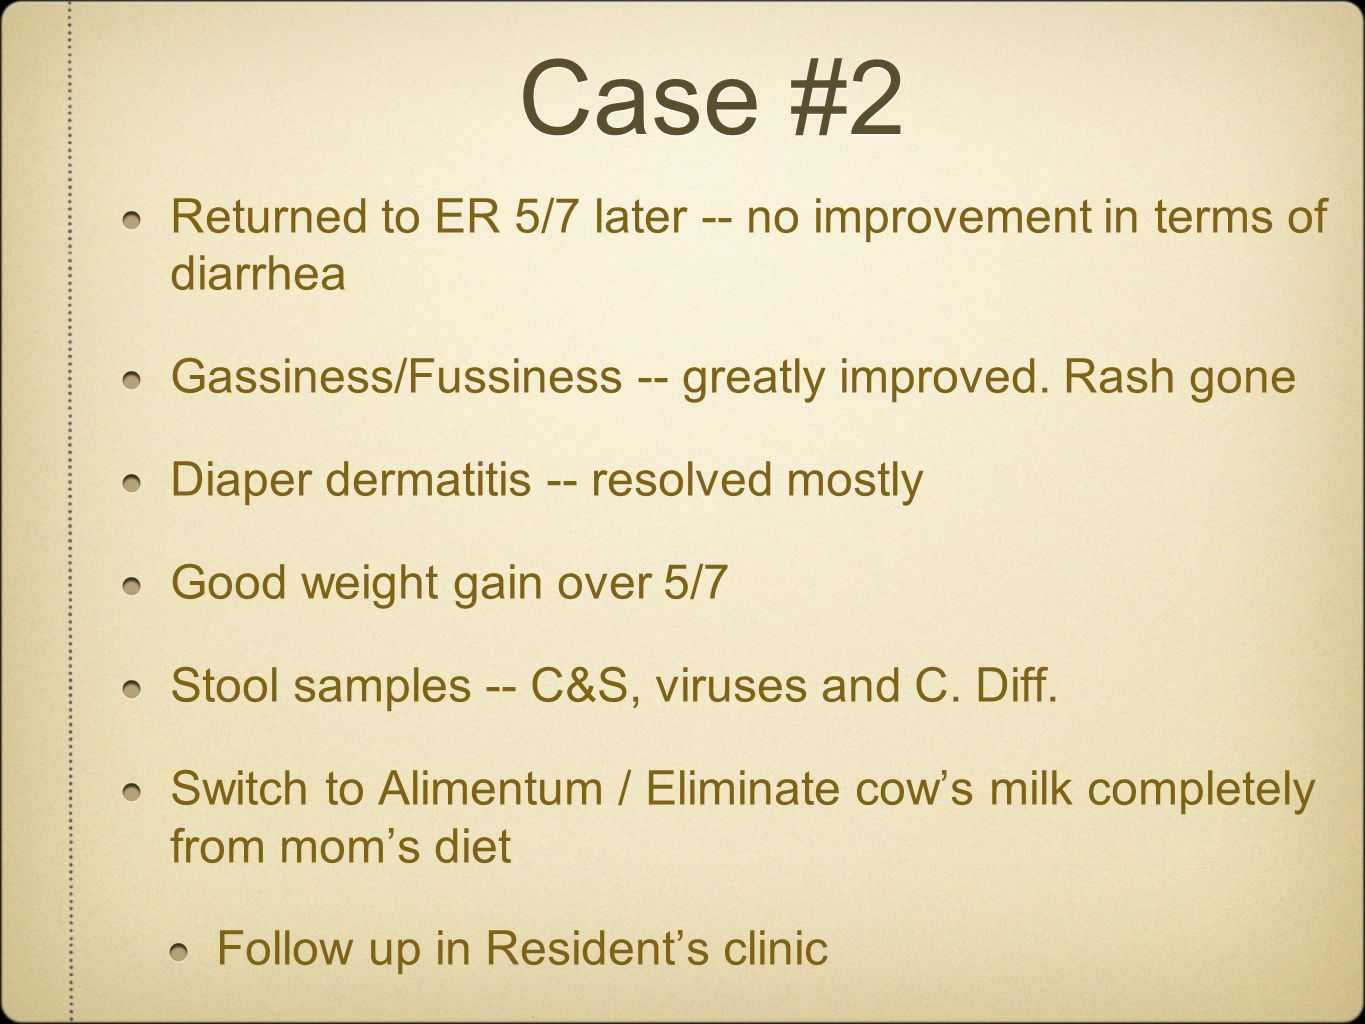 Case #2 Returned to ER 5/7 later -- no improvement in terms of diarrhea. Gassiness/Fussiness -- greatly improved. Rash gone.